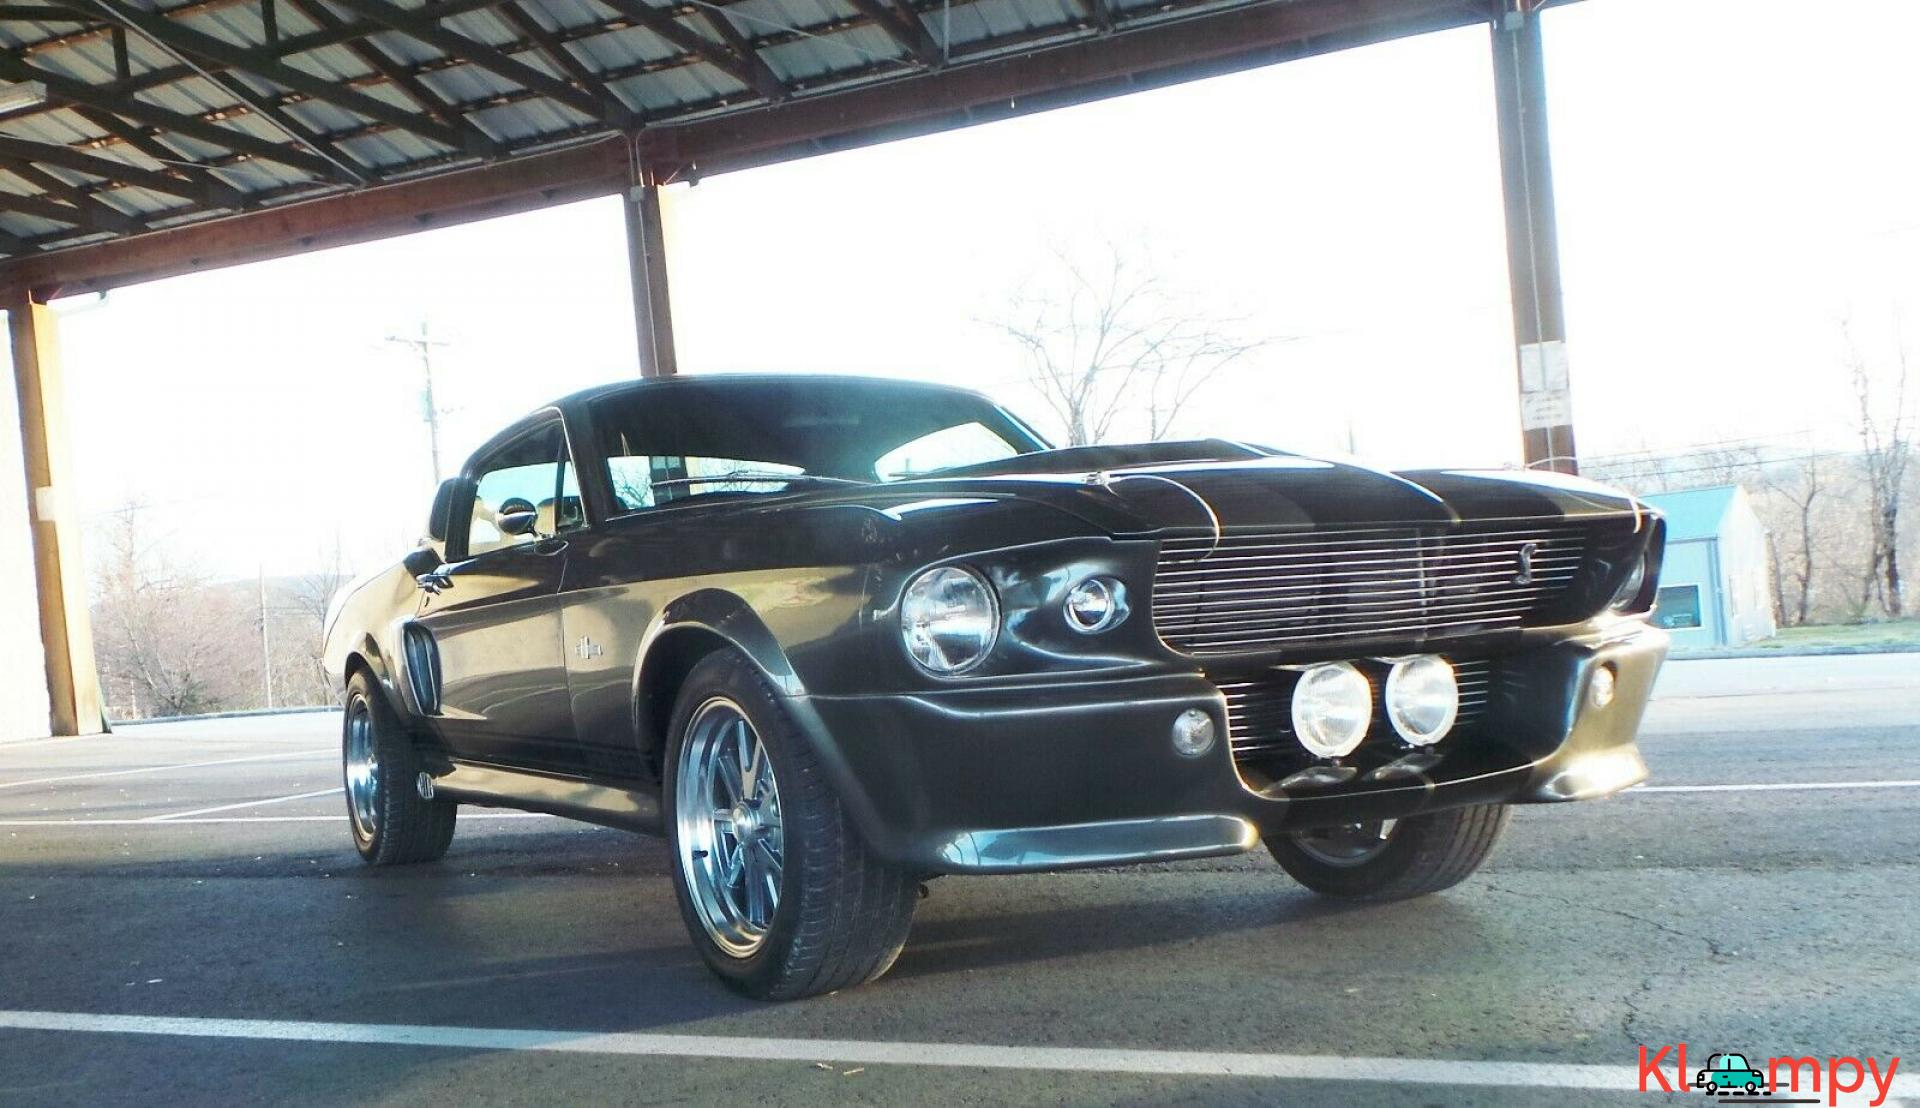 Ford Mustang Shelby Gt500 Eleanor 1967 Drift